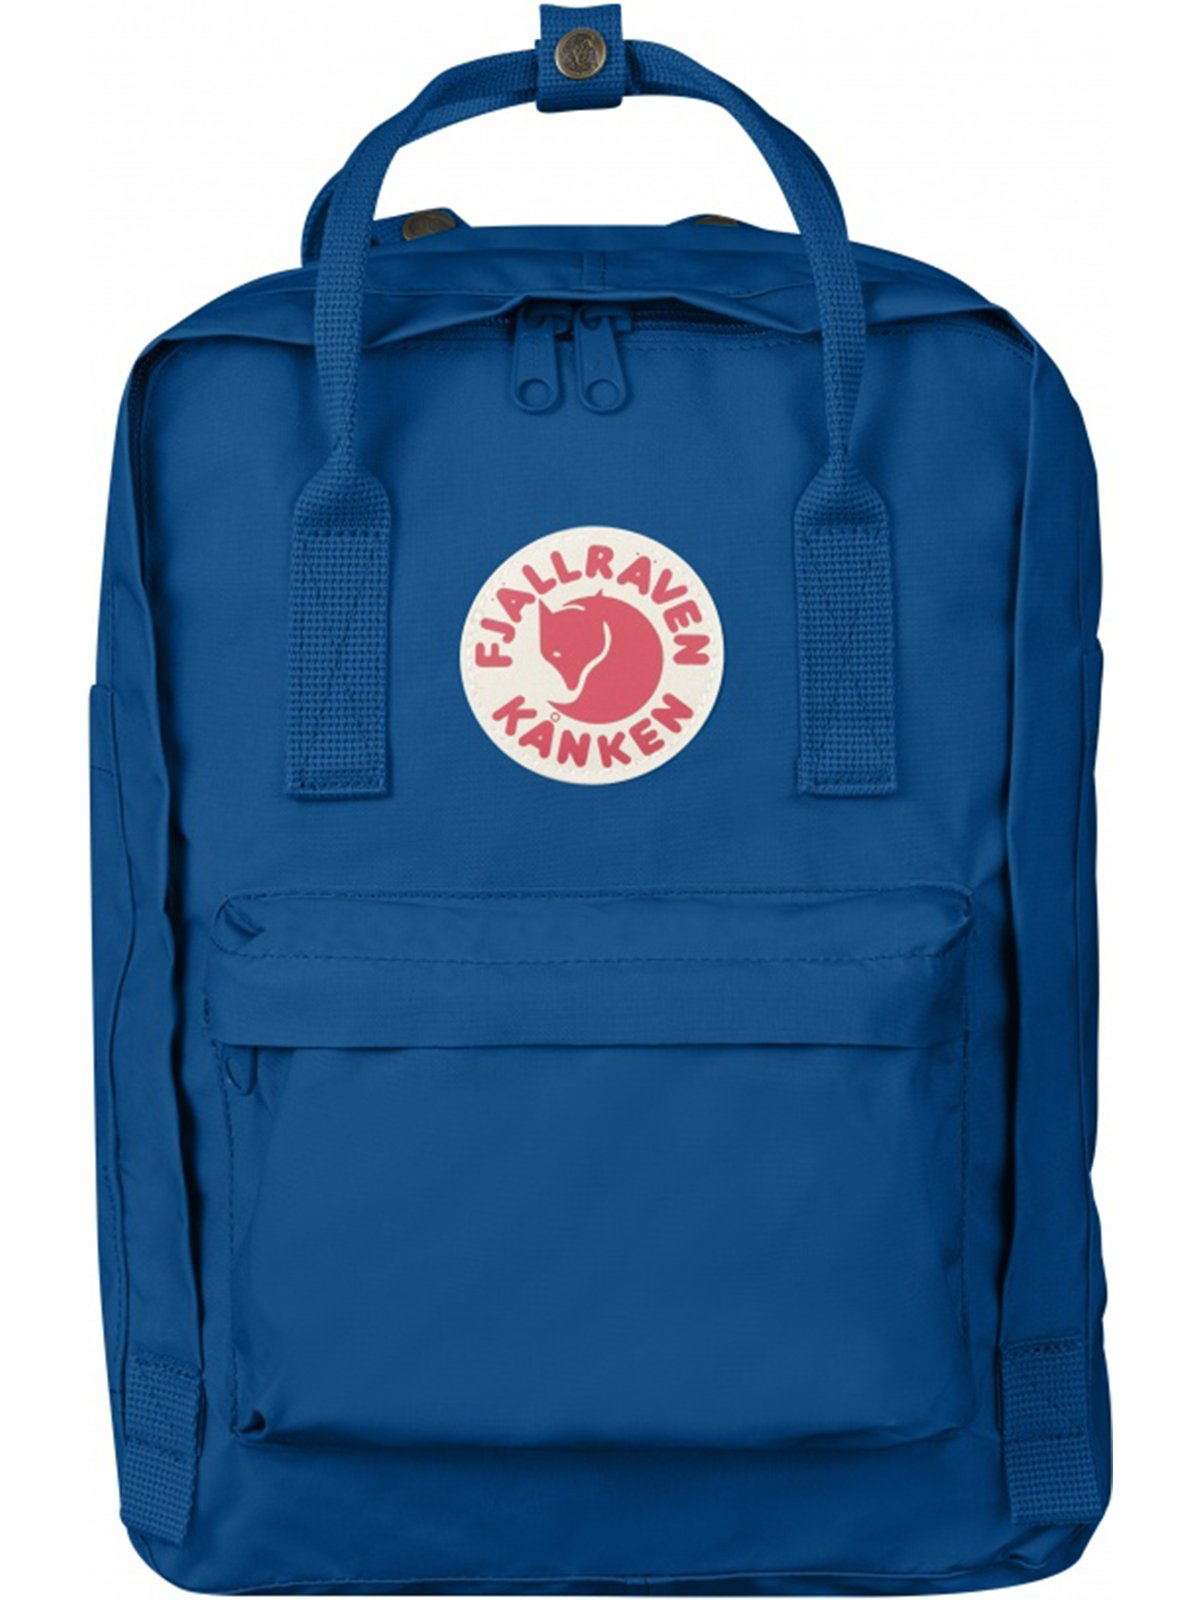 827d7d055 Buy Original Fjallraven Fjallraven Kanken Laptop 13 Inch Lake Blue ...